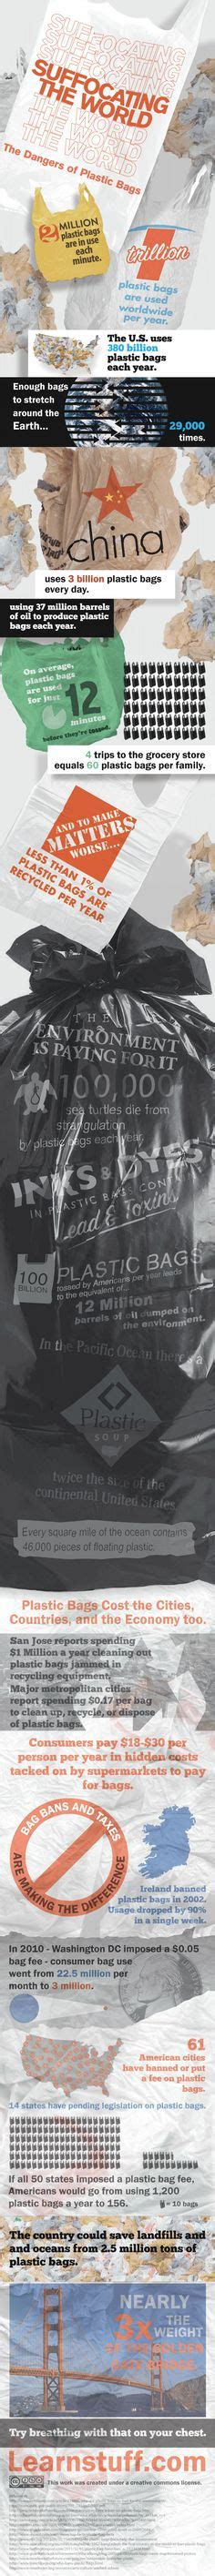 Bag Borrow Or Store Dont You Just The Idea by Wondering What Of Plastic Bags And You Can